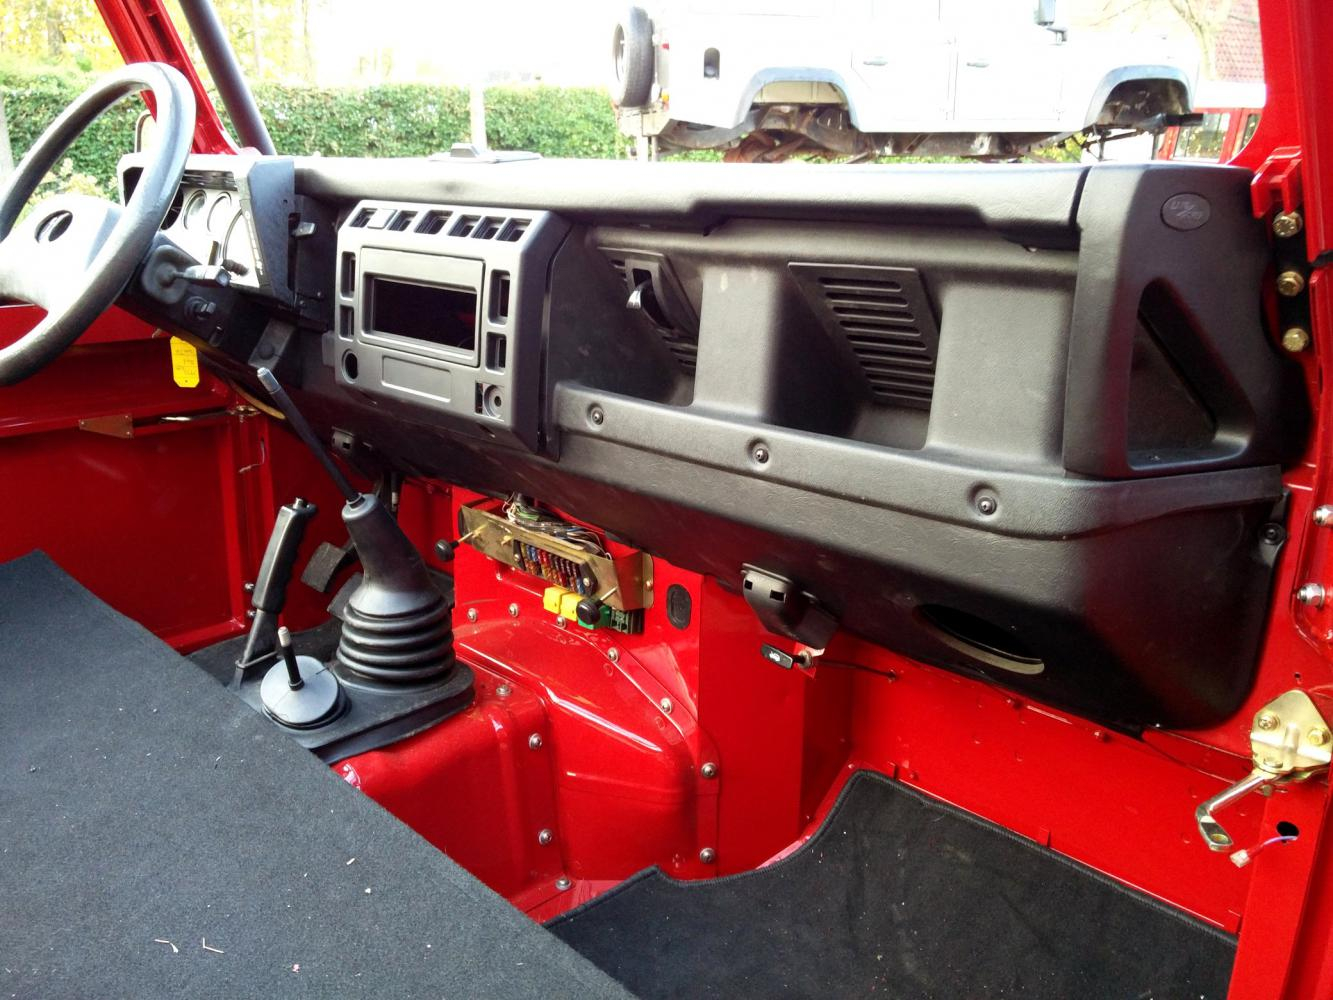 Click image for larger version  Name:1992 LR LHD Defender 90 Red 200 Tdi A day 10 TD5 dash conversion.jpg Views:180 Size:174.8 KB ID:322409